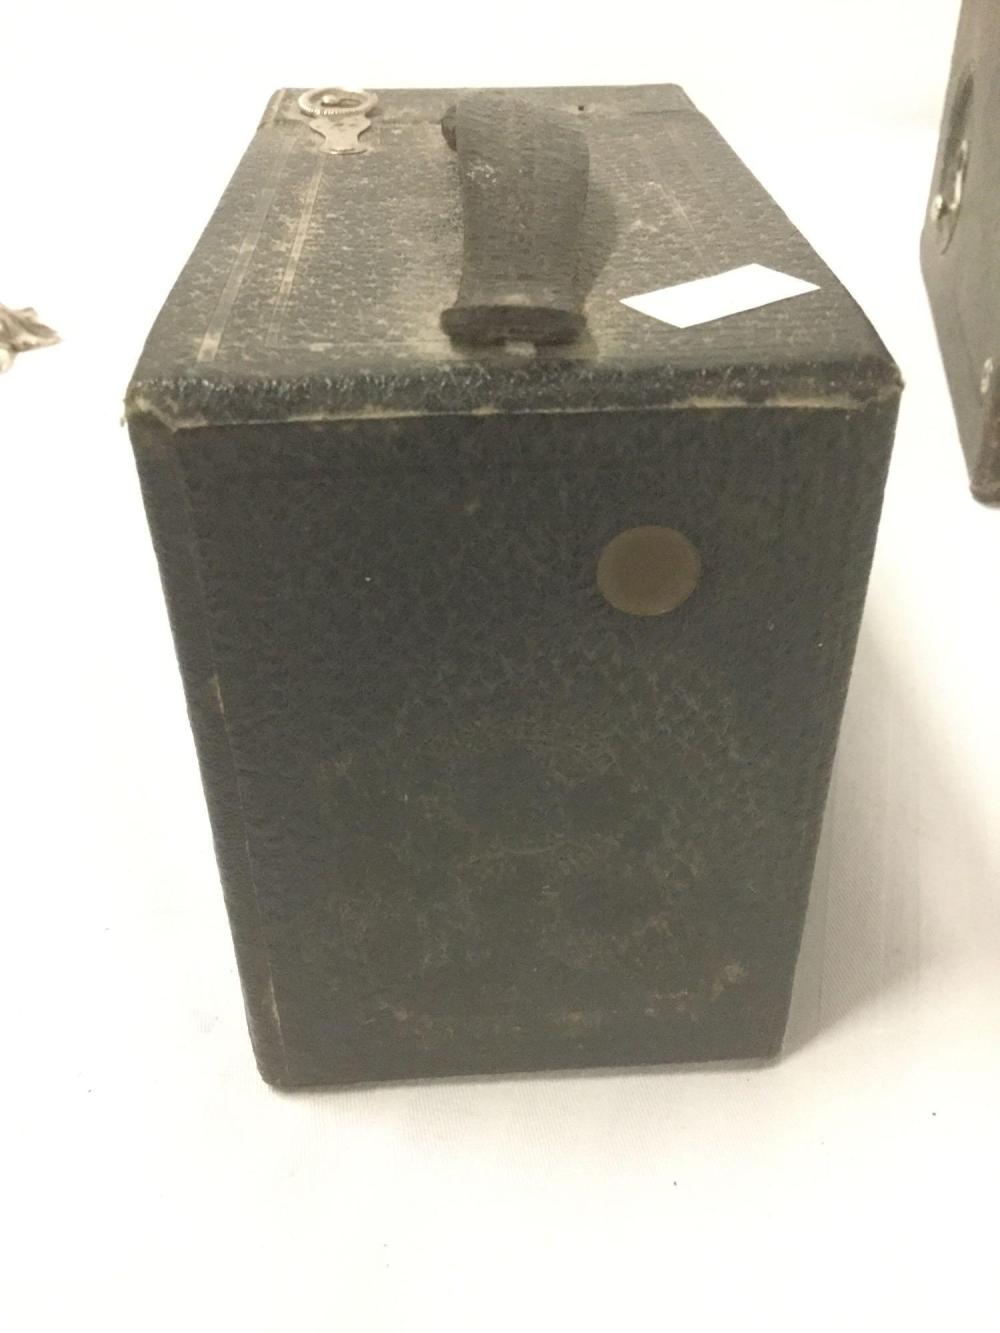 Lot 191: Pair of vintage box cameras, an Eastman Kodak 120, and an unnamed camera